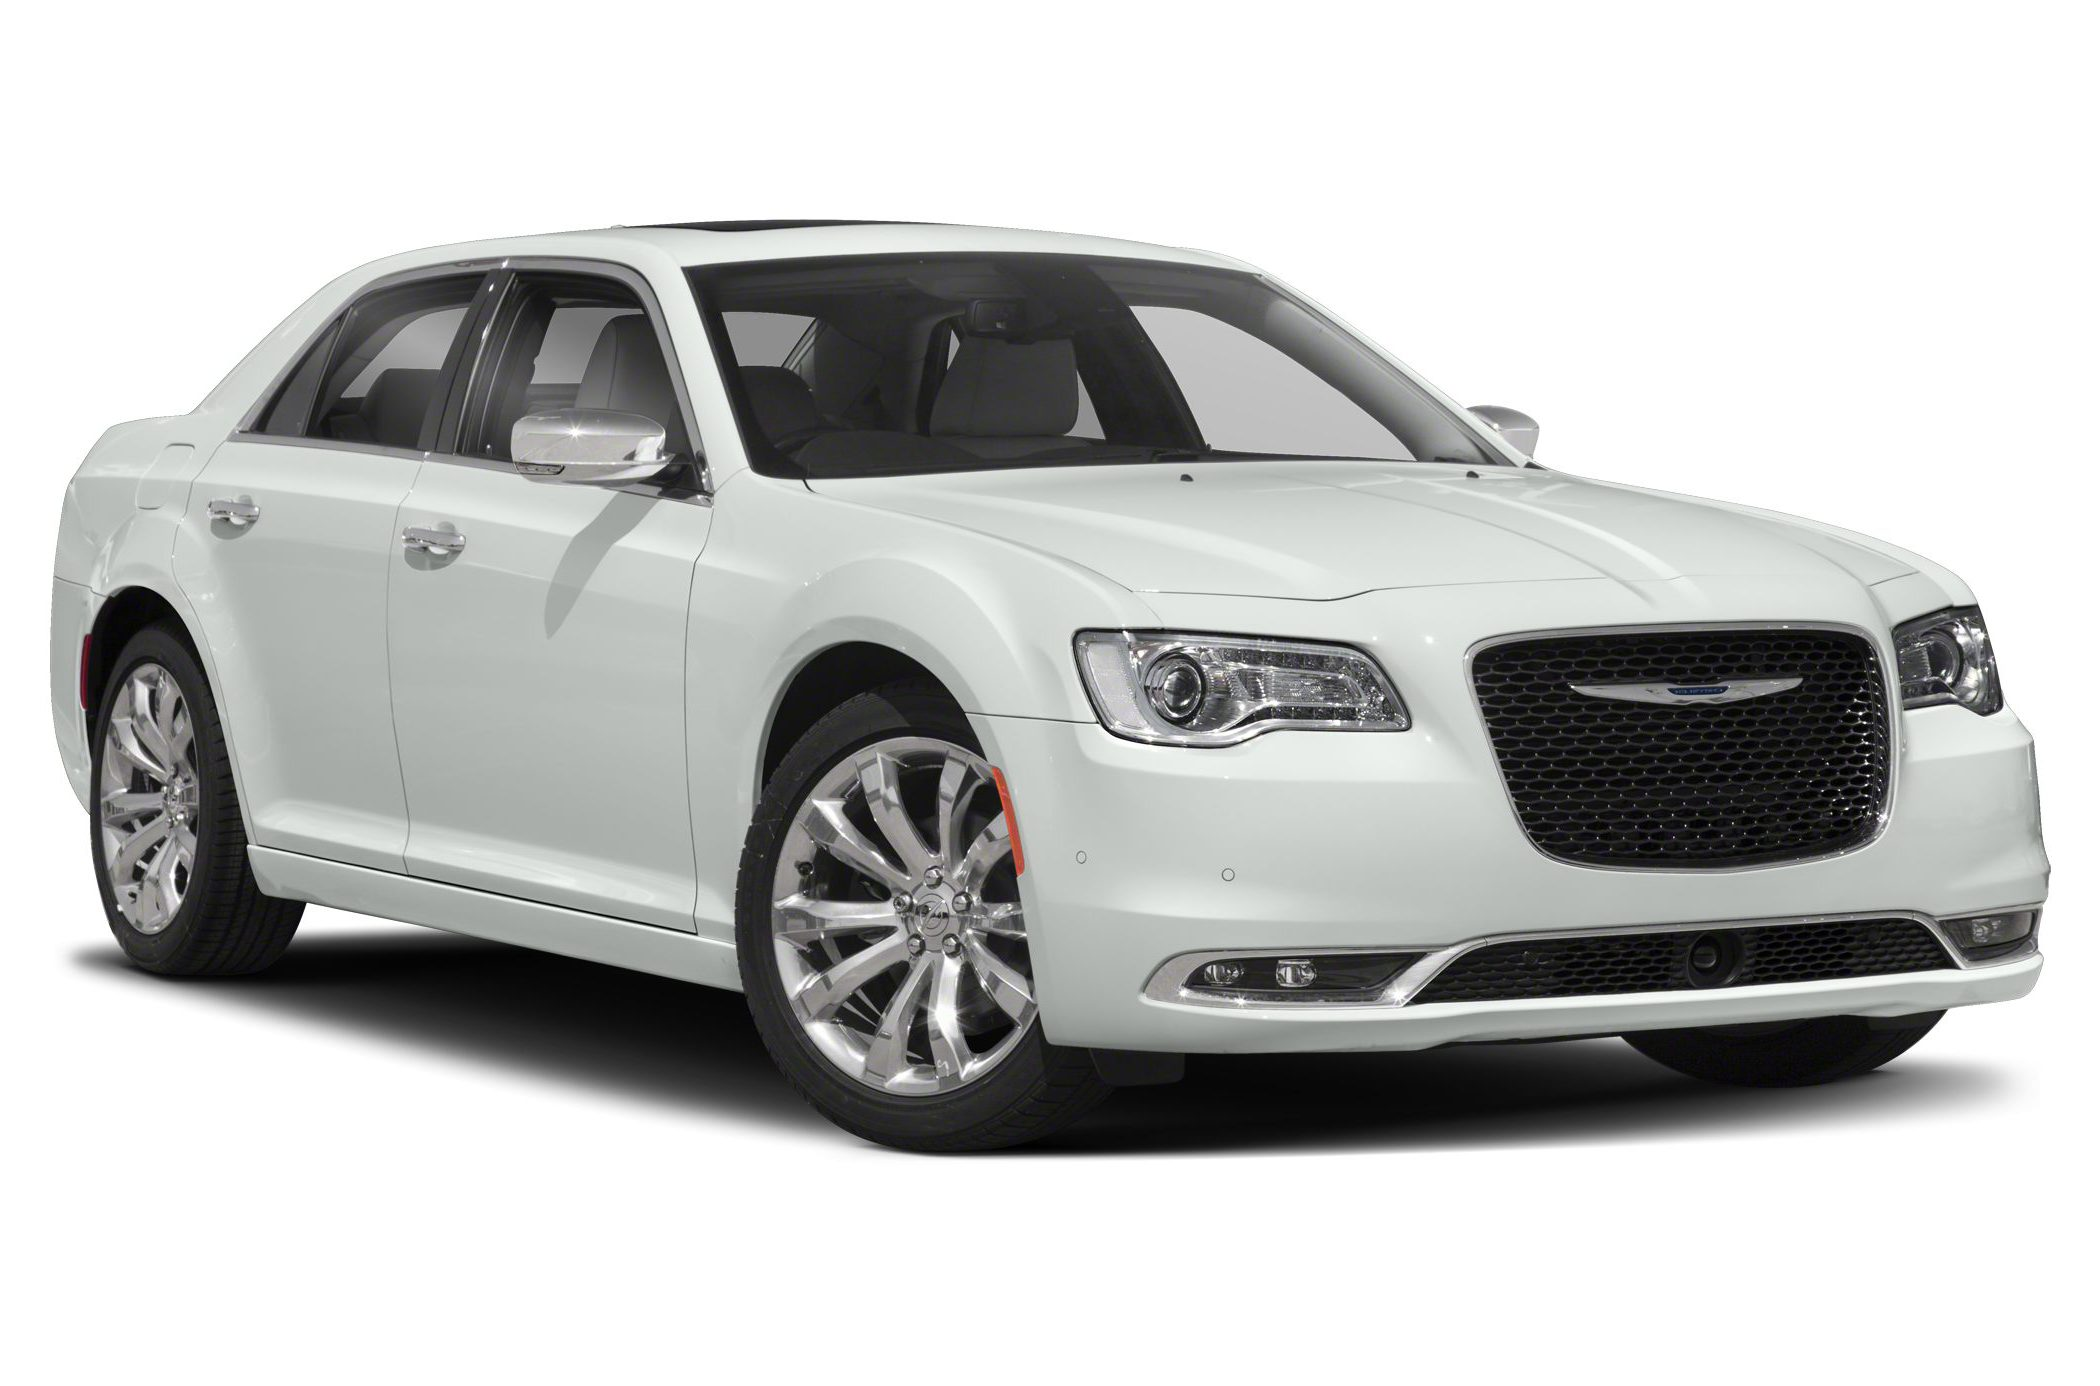 How To Choose The Perfect Headlights For Chrysler 300?